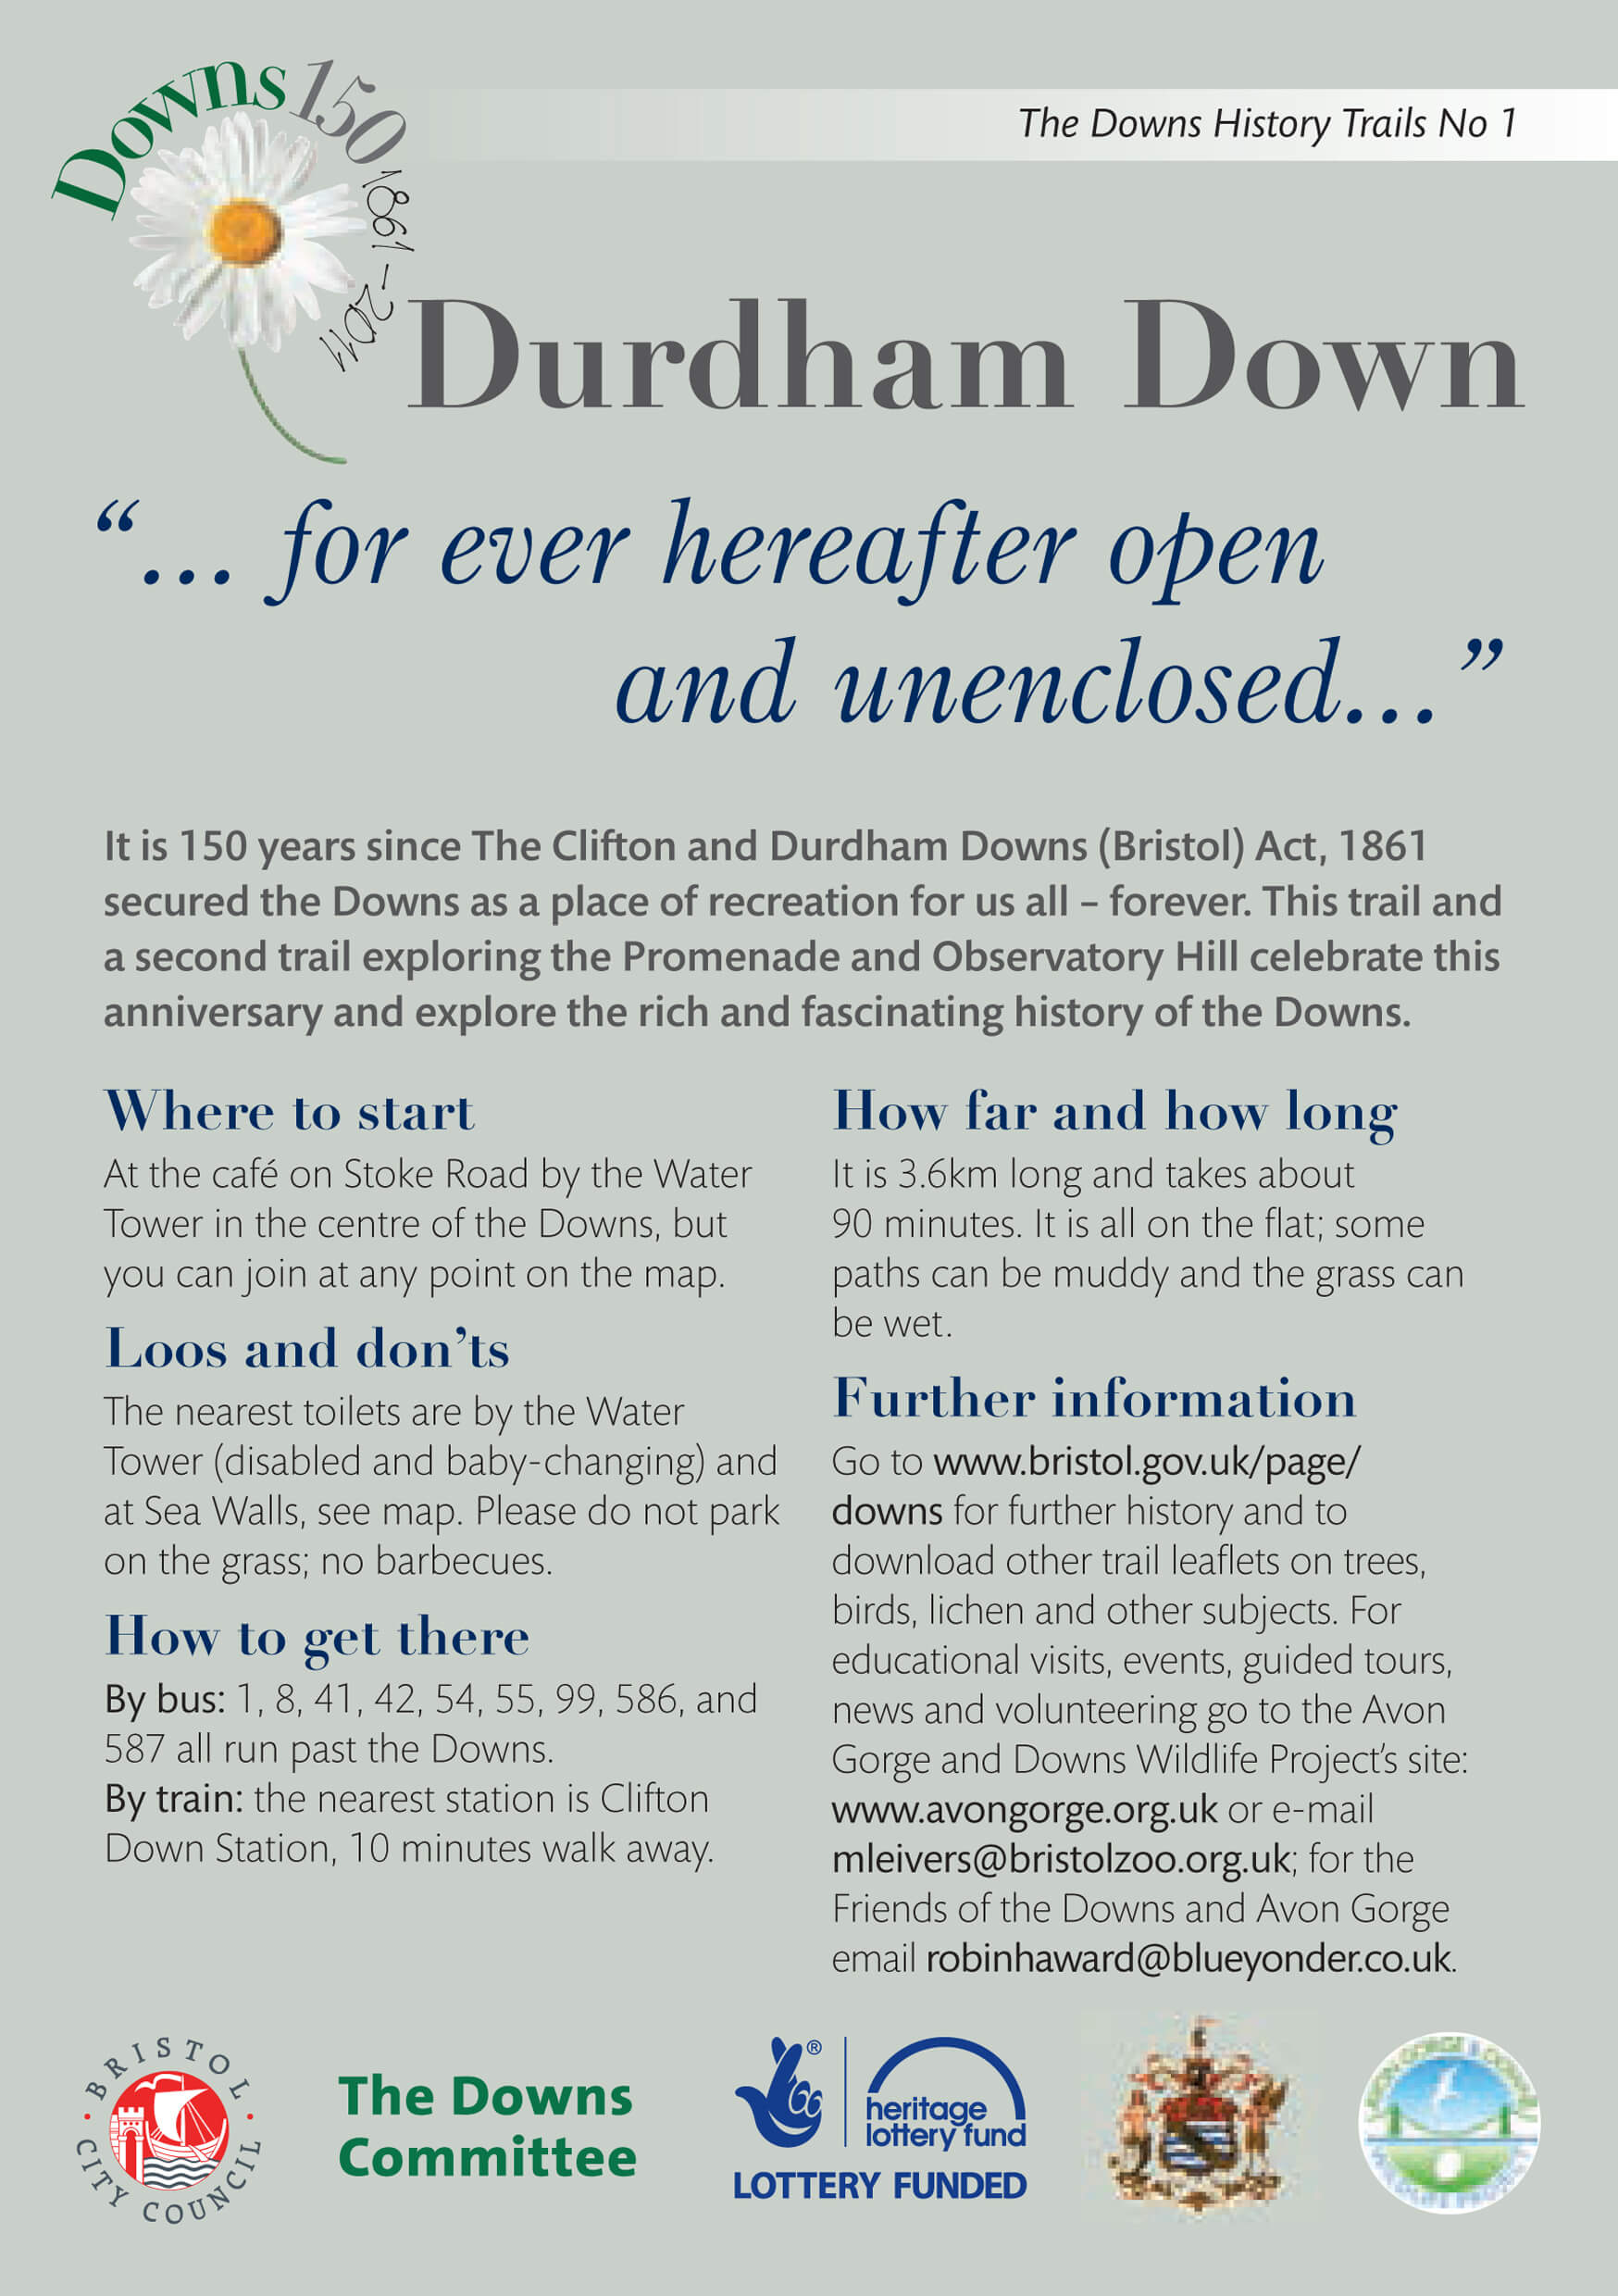 Durdham Down history trail download leaflet